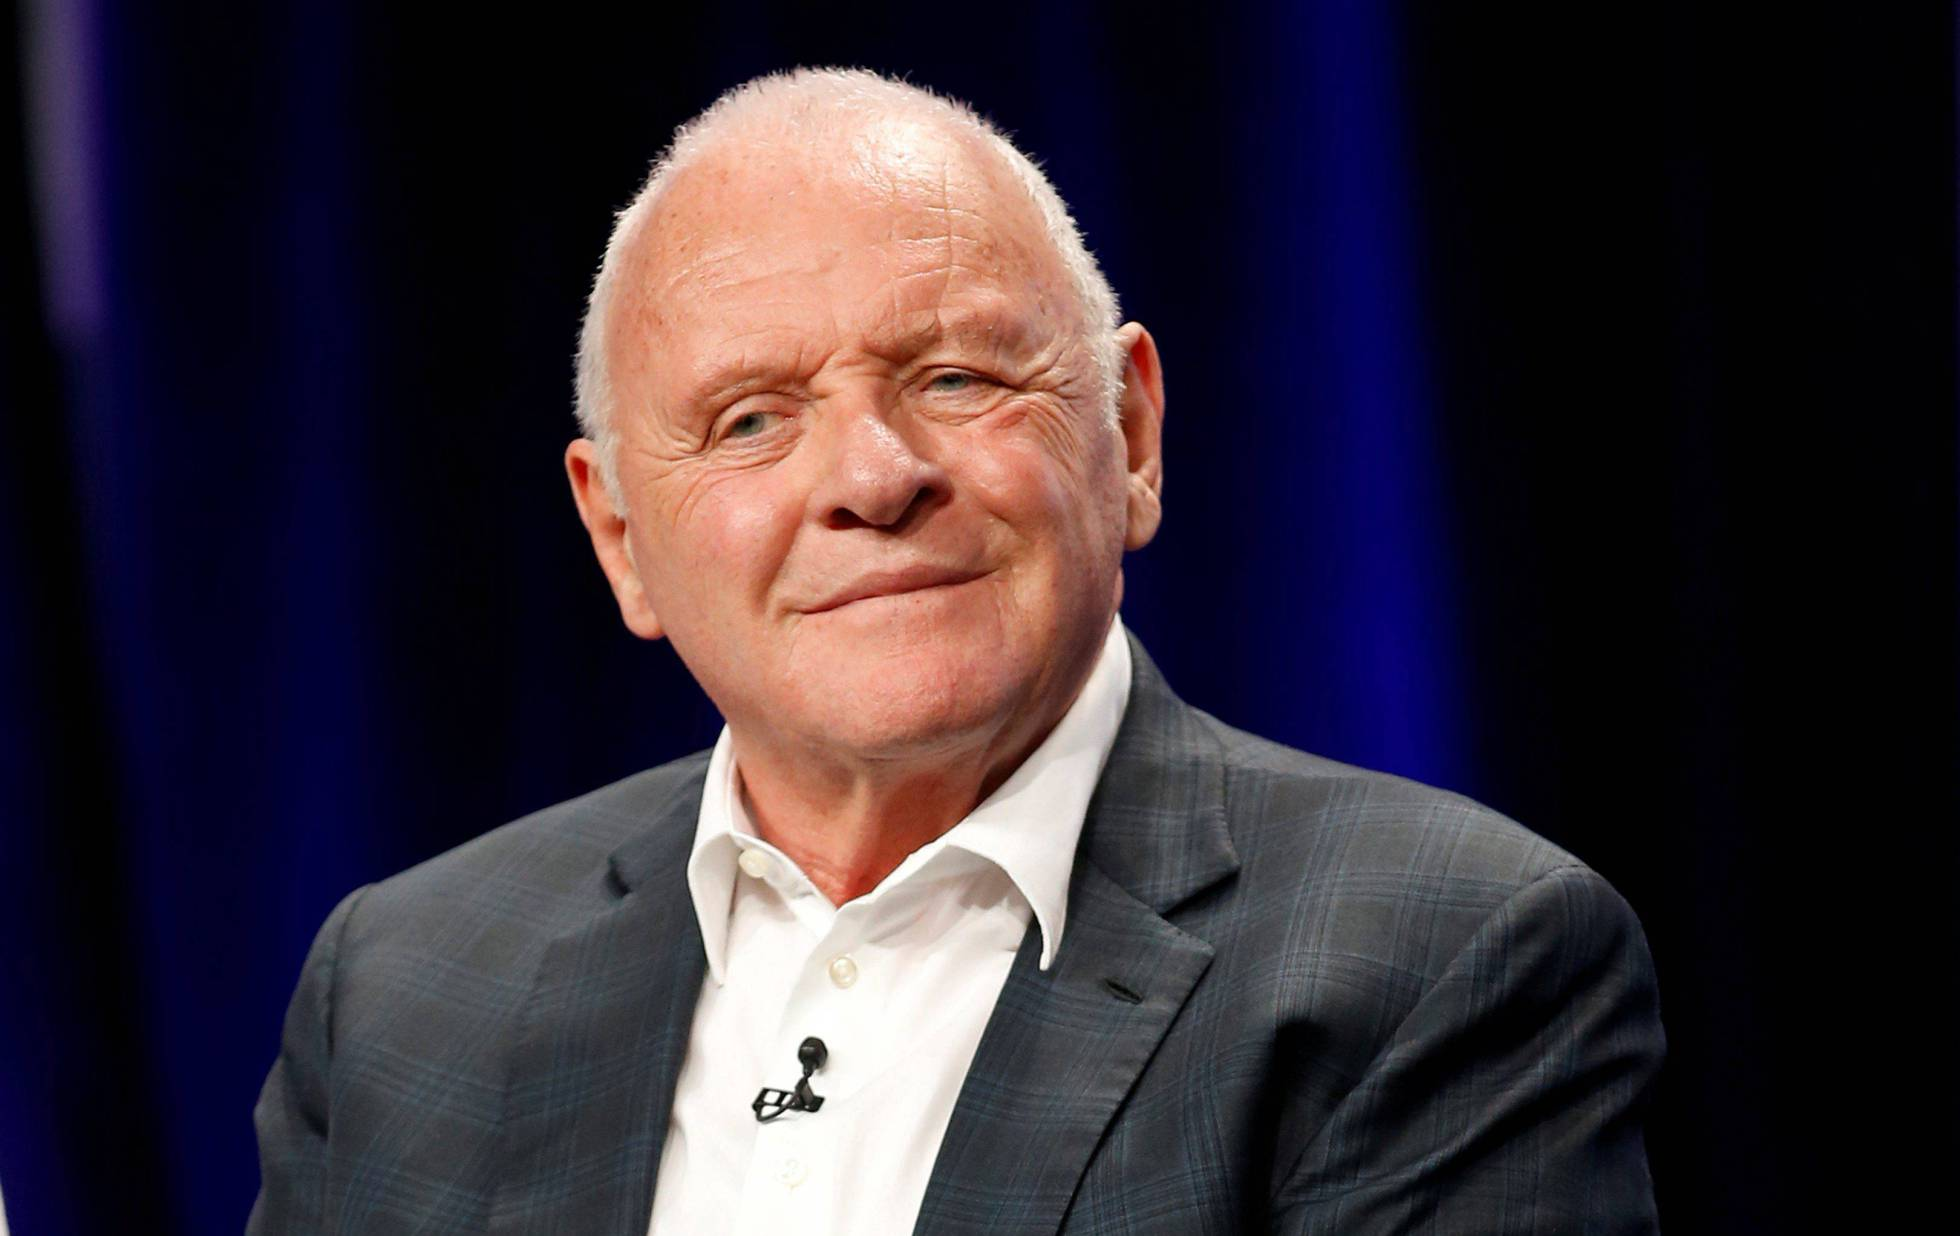 Anthony Hopkins explora los horrores de la demencia en nuevo filme